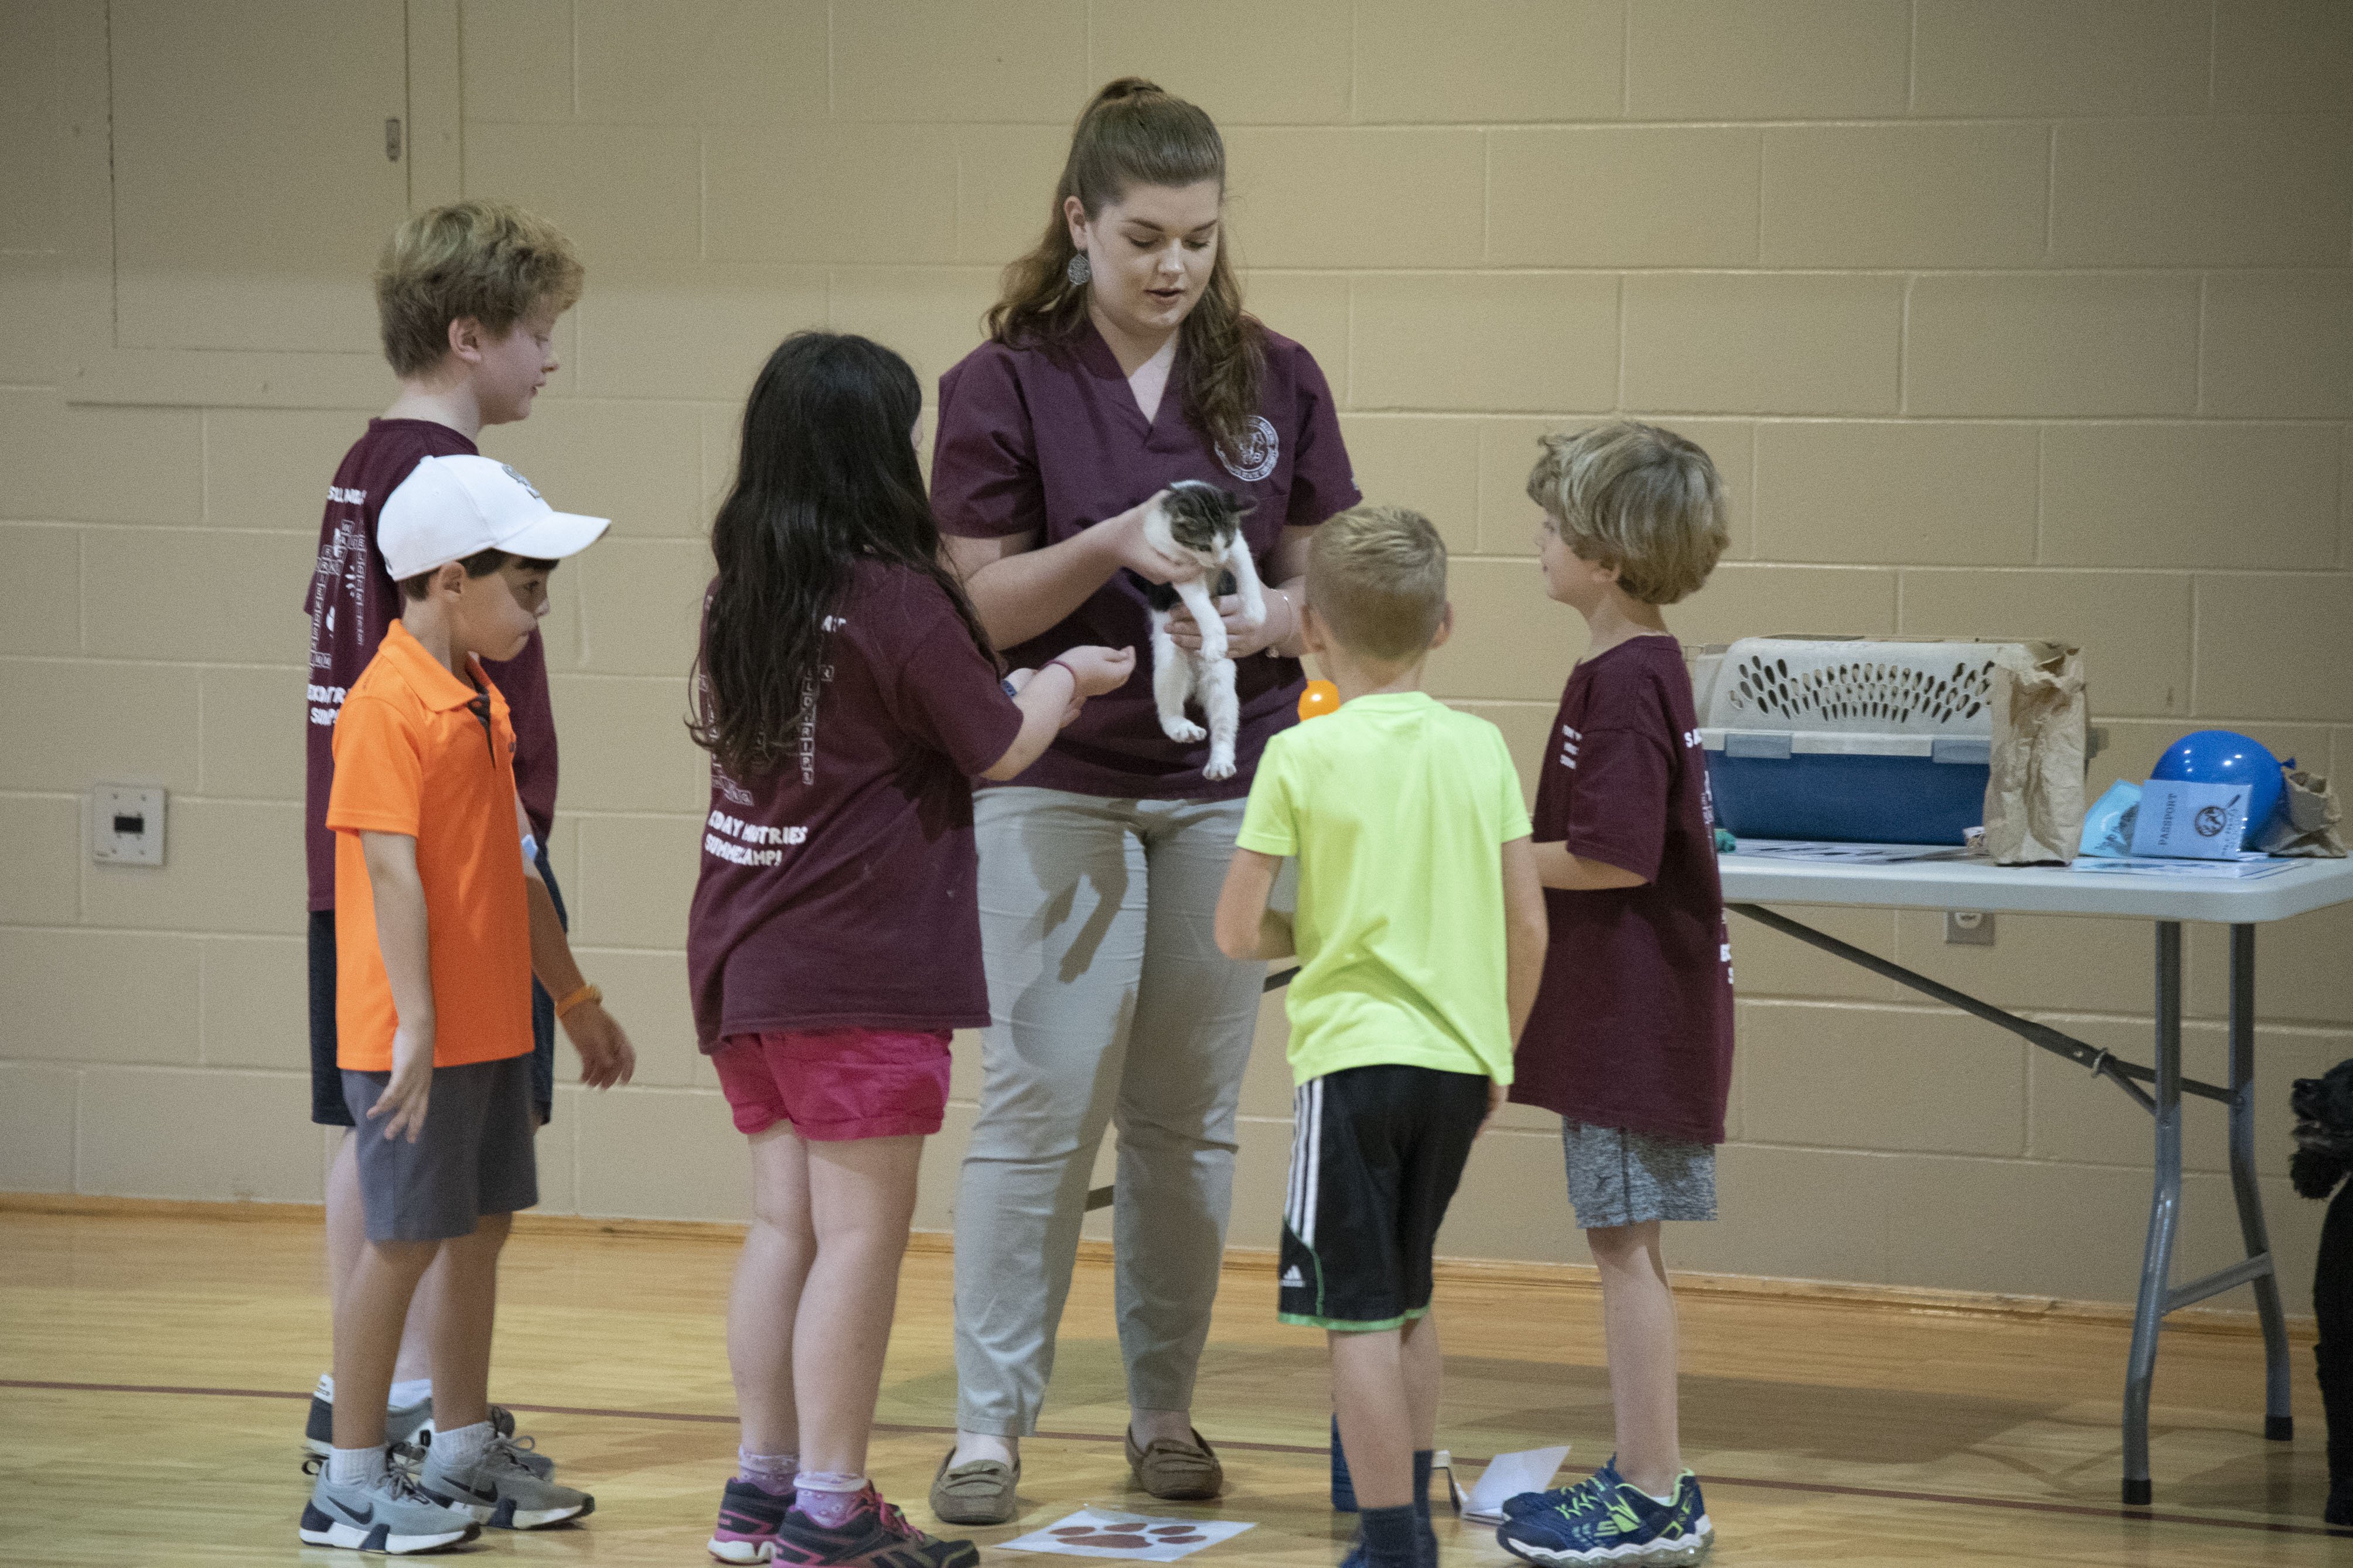 Young students observe a kitten